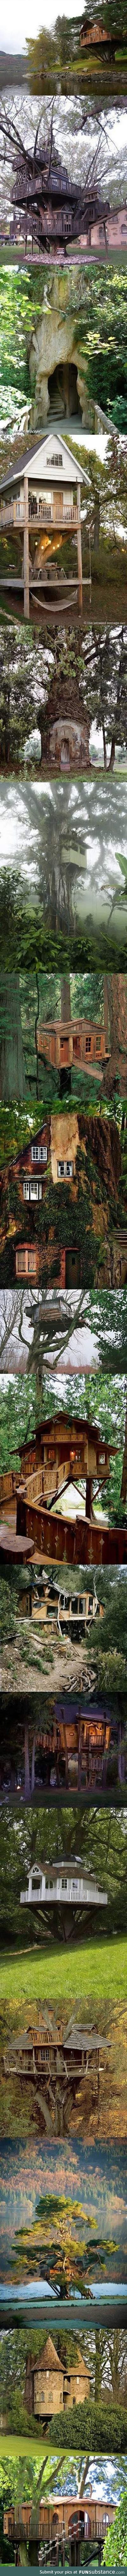 I need a grownup tree house in my life